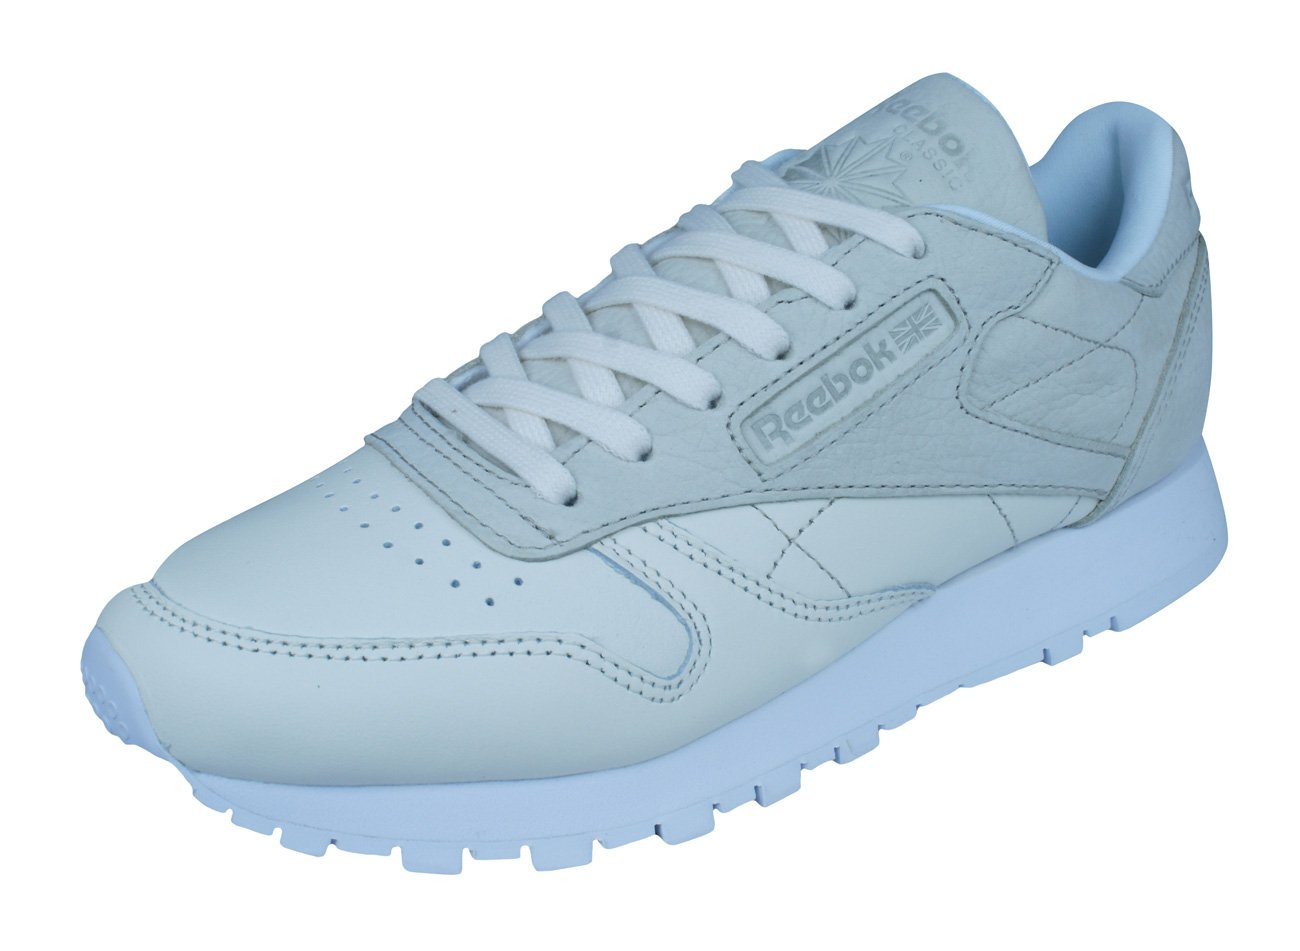 Reebok Classic Leather Sea You Later Womens Sneakers/Shoes B06XRYPVX7 8 B(M) US|White